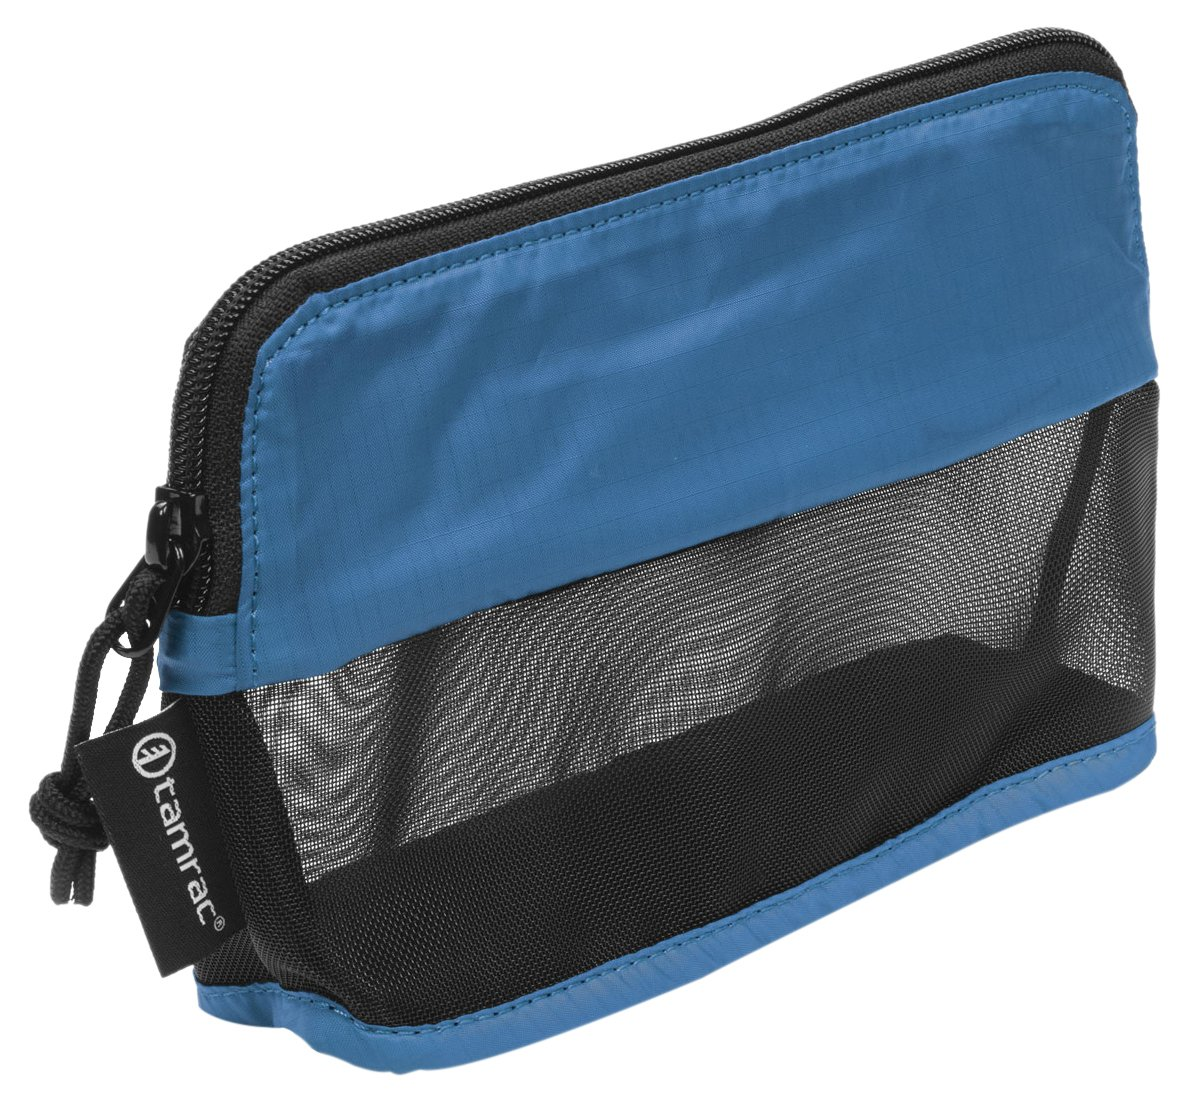 Tamrac Goblin Accessory Pouch 1.0 Pouch Black,Blue - equipment cases (Pouch, Black, Blue, Nylon)